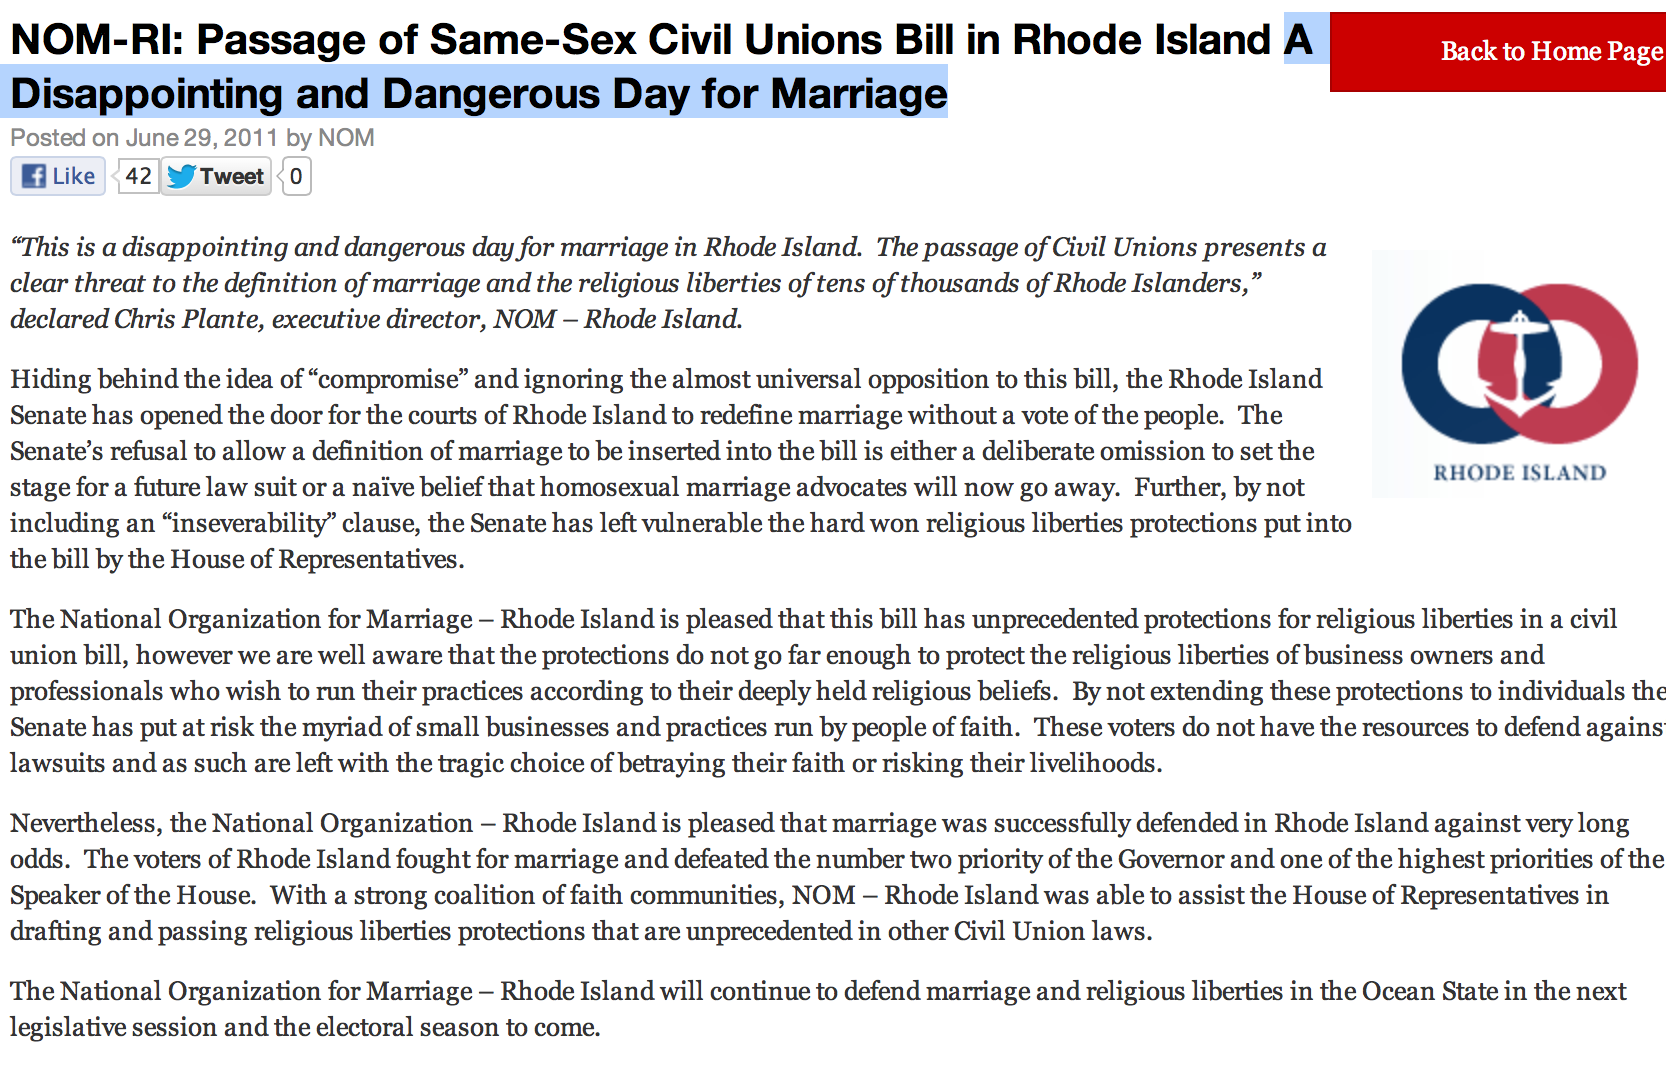 NOM; National Organization for Marriage; Rhode Island